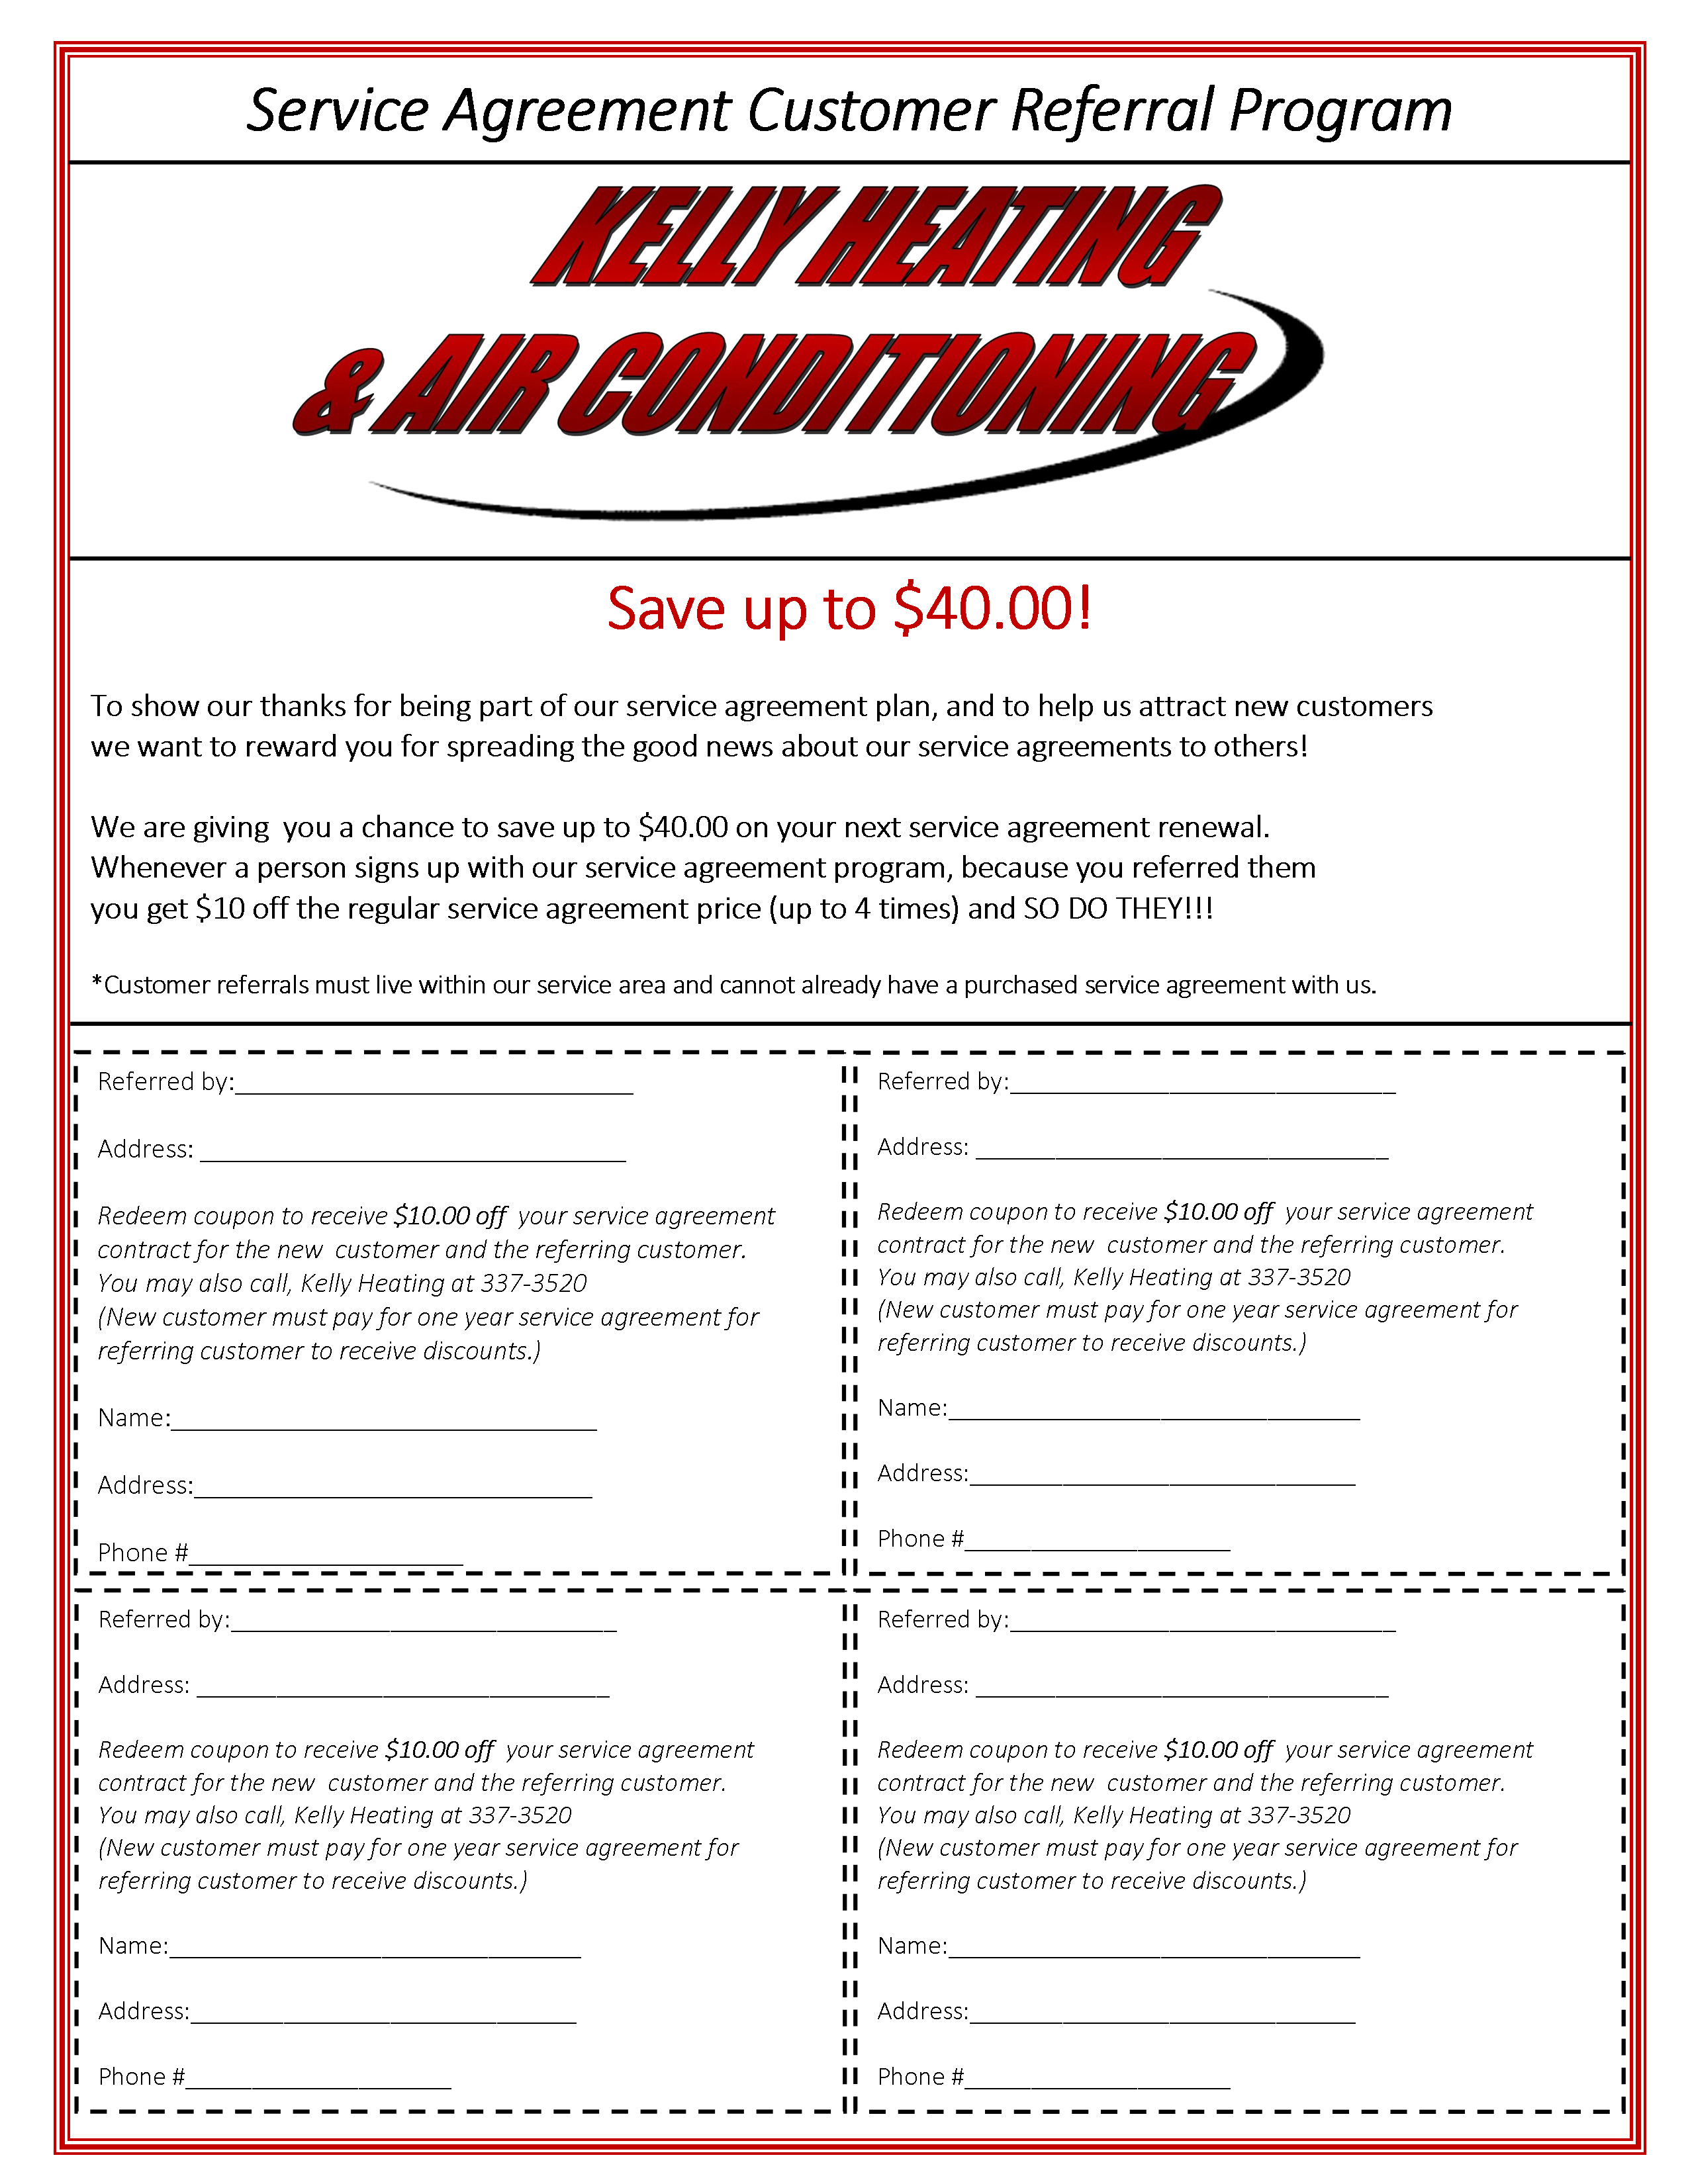 Service Agreement Referral Form